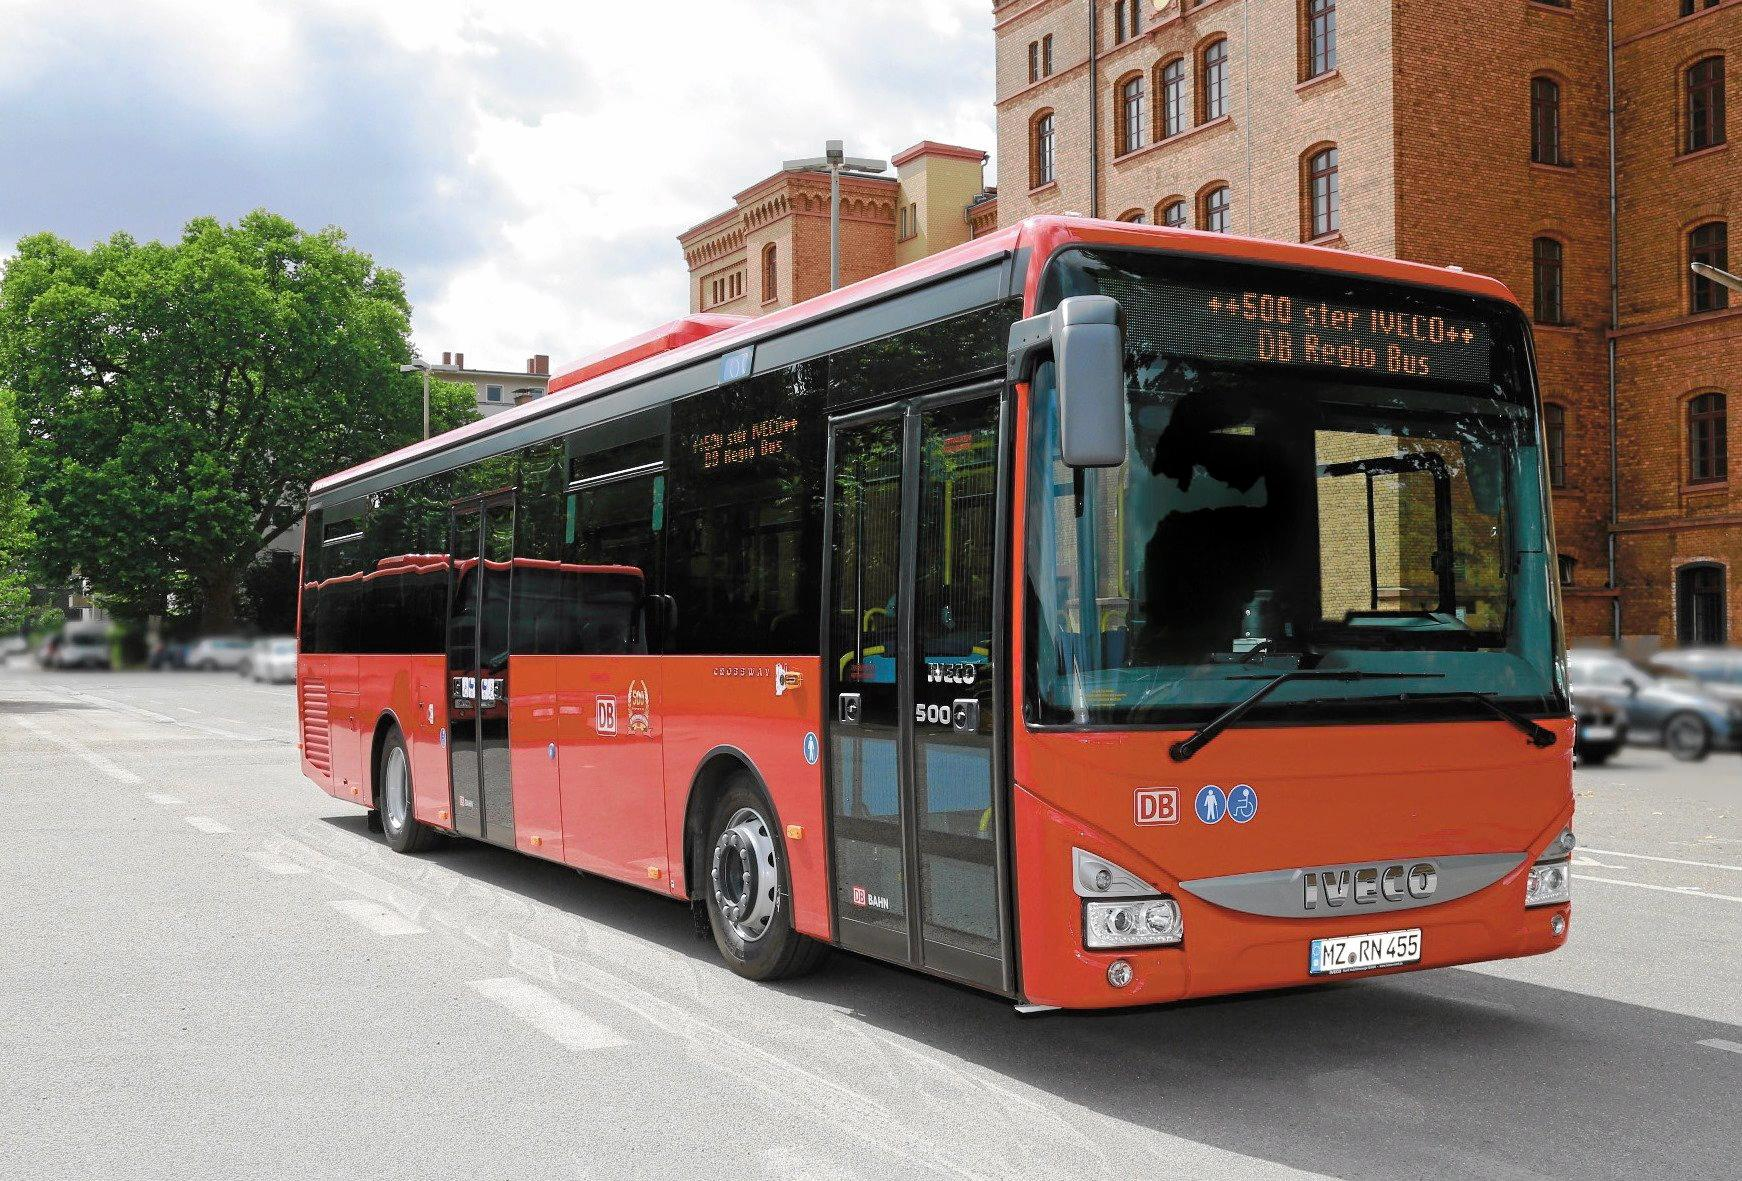 As well as the recent order for the city of Nantes, DB Reggio Bus, Germany's largest bus operator has increased its order of natural gas-powered Iveco Crossway buses - over 1000 will be operating for the company by 2018.